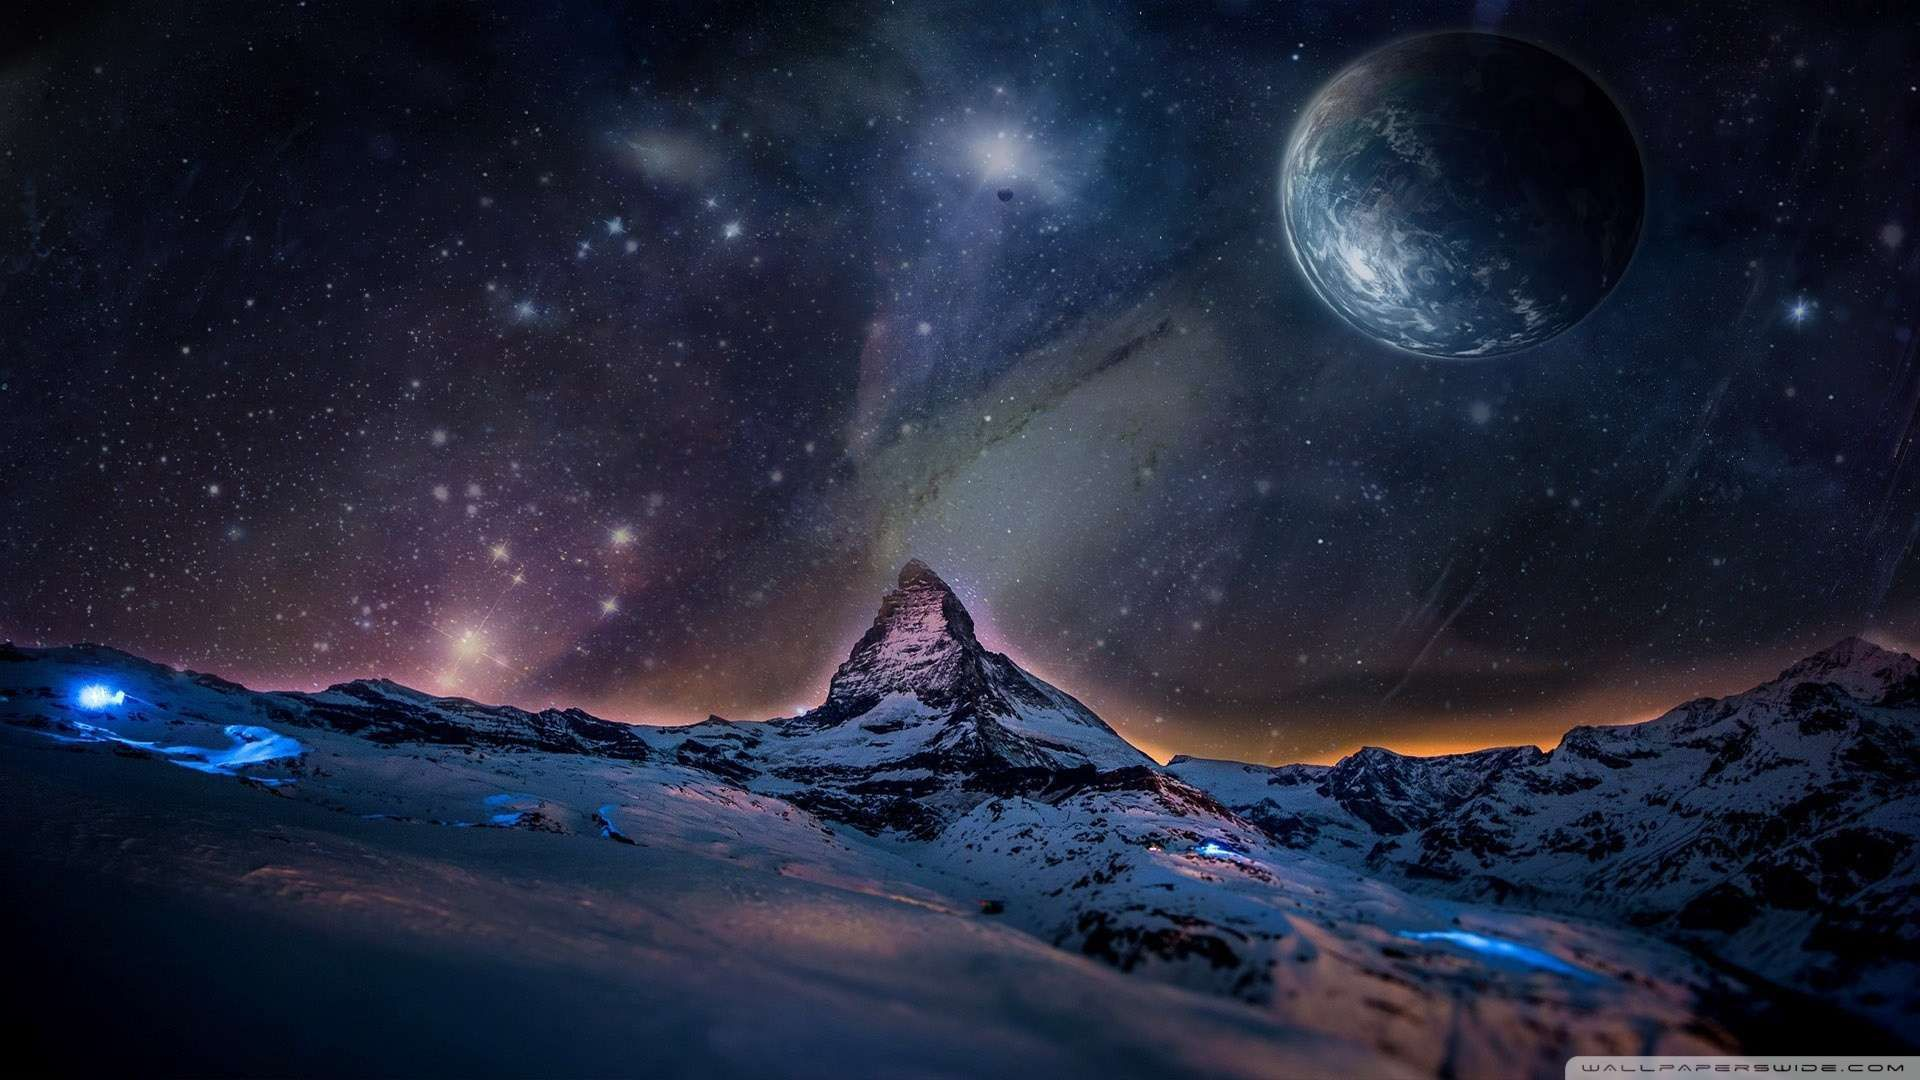 Hd Space Wallpapers 1080p WallpaperSafari (с